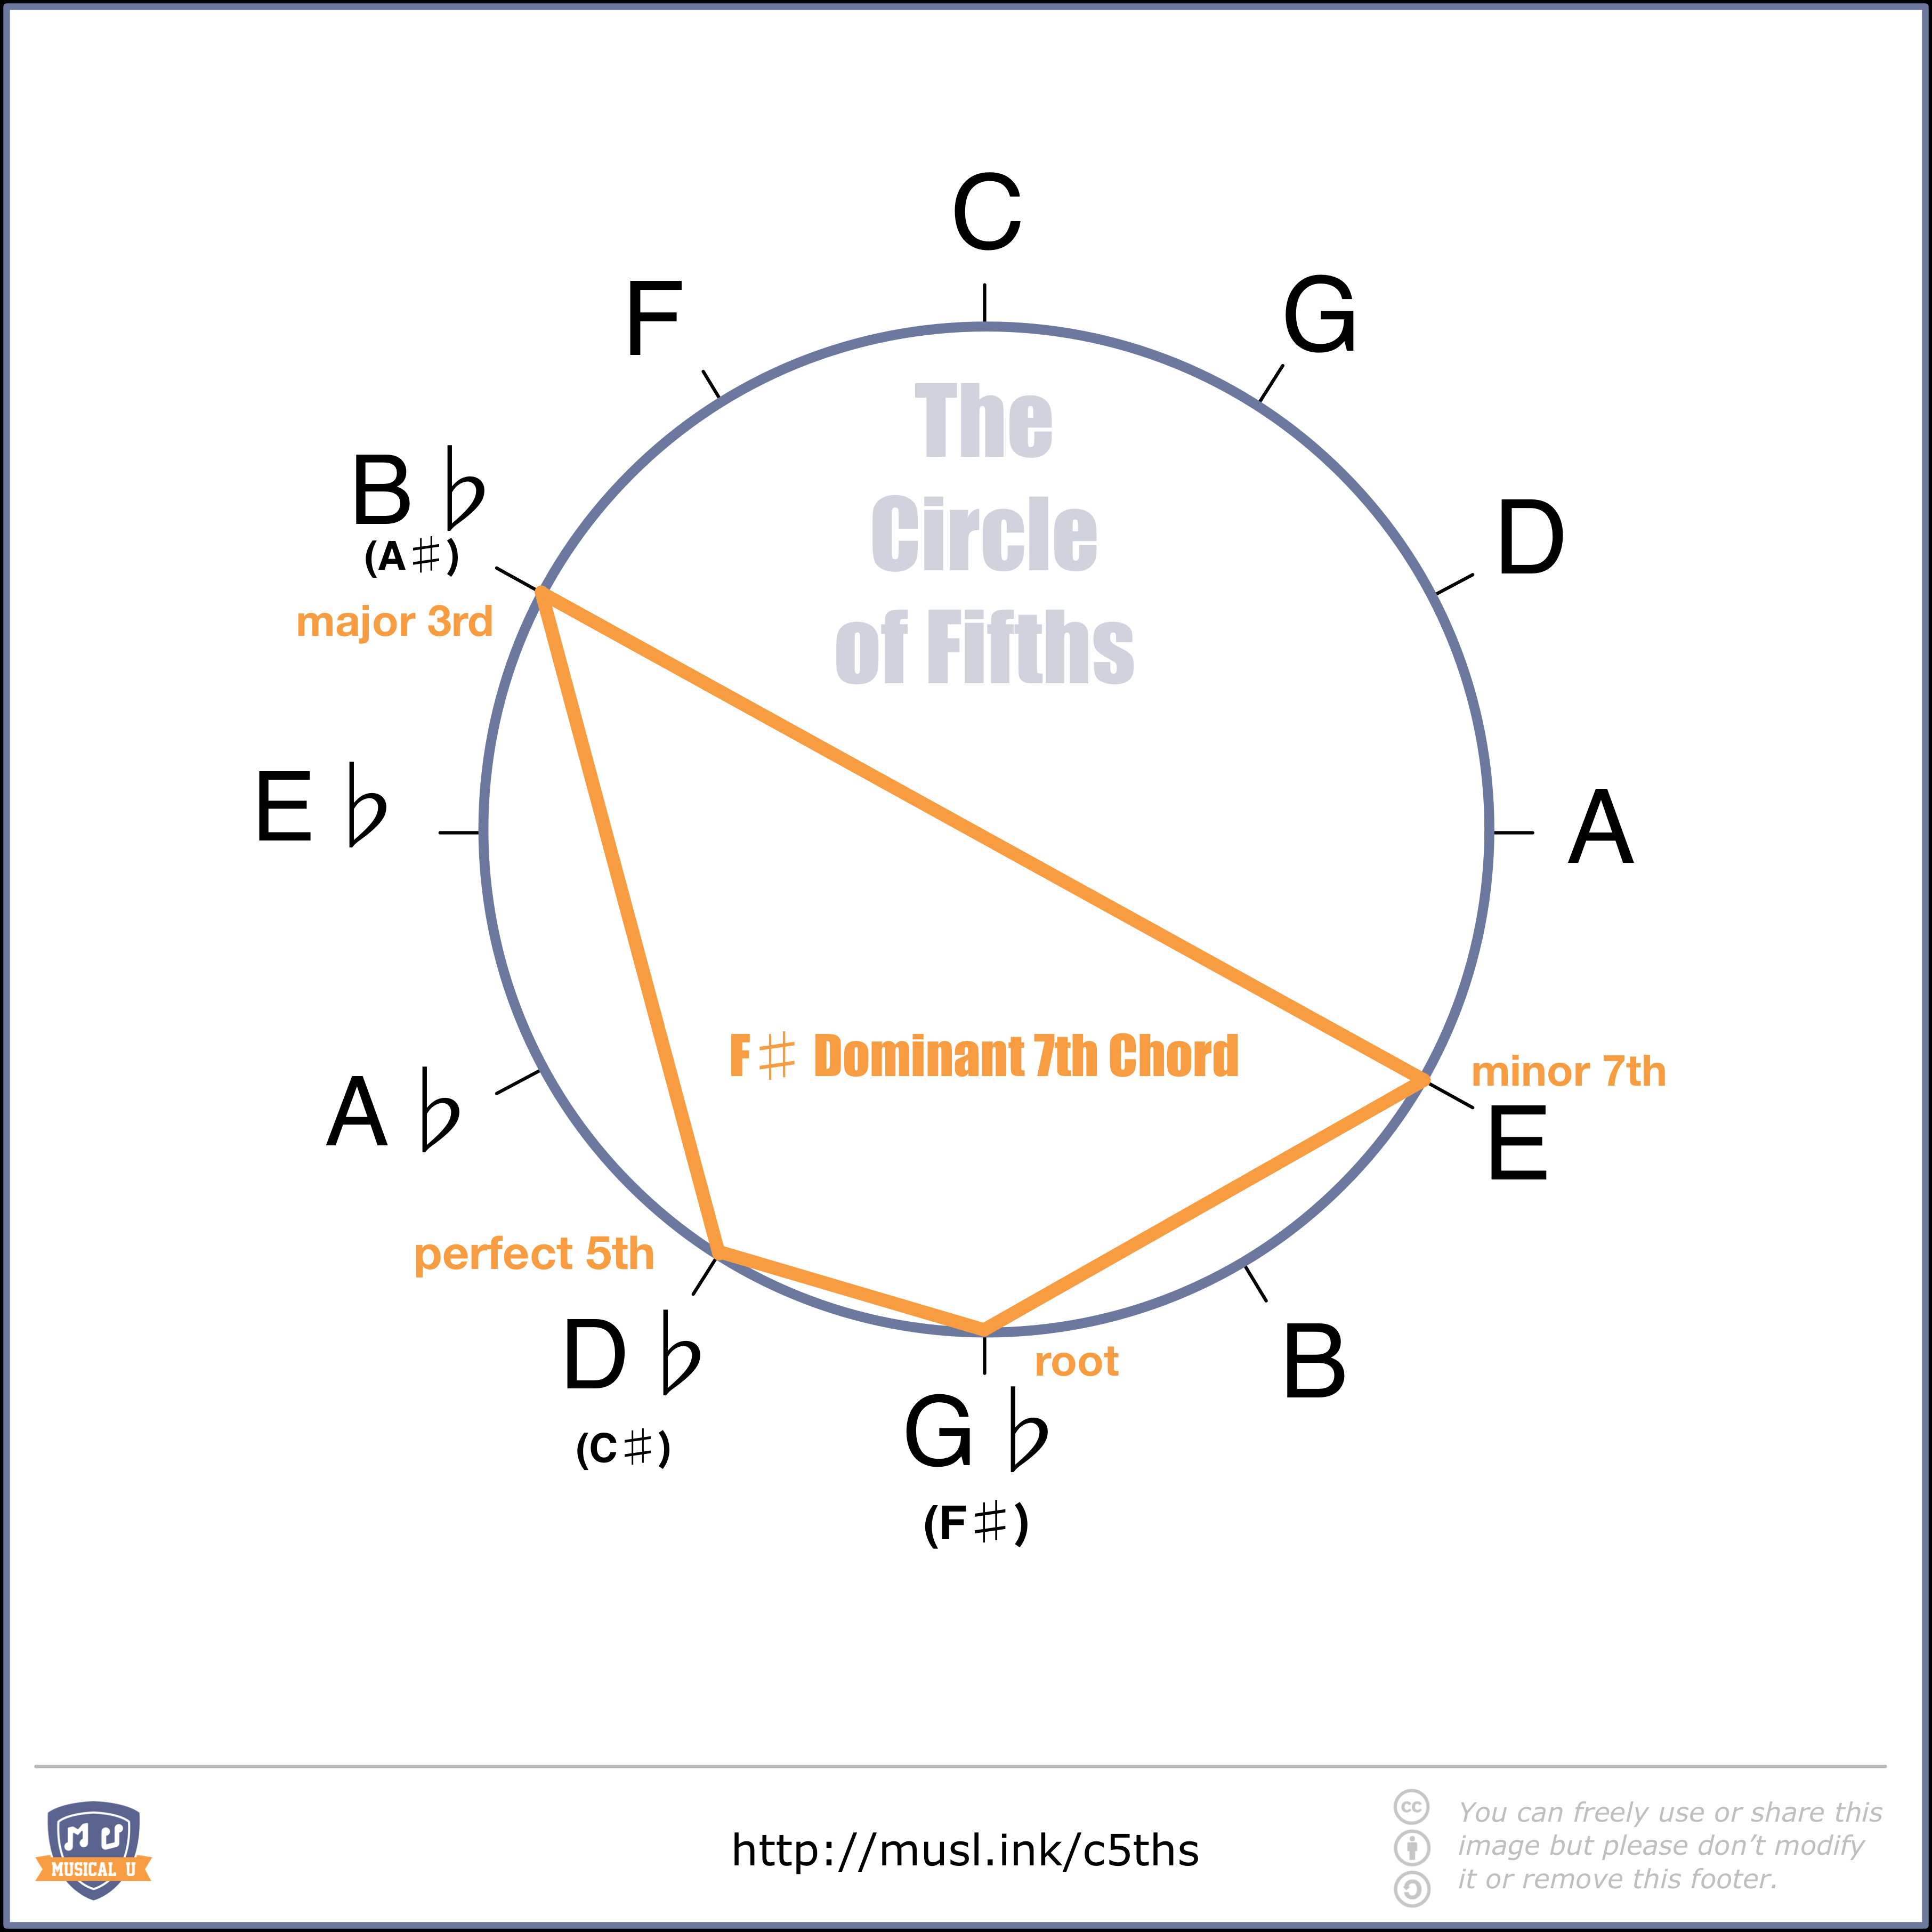 how to know what circle of fiths